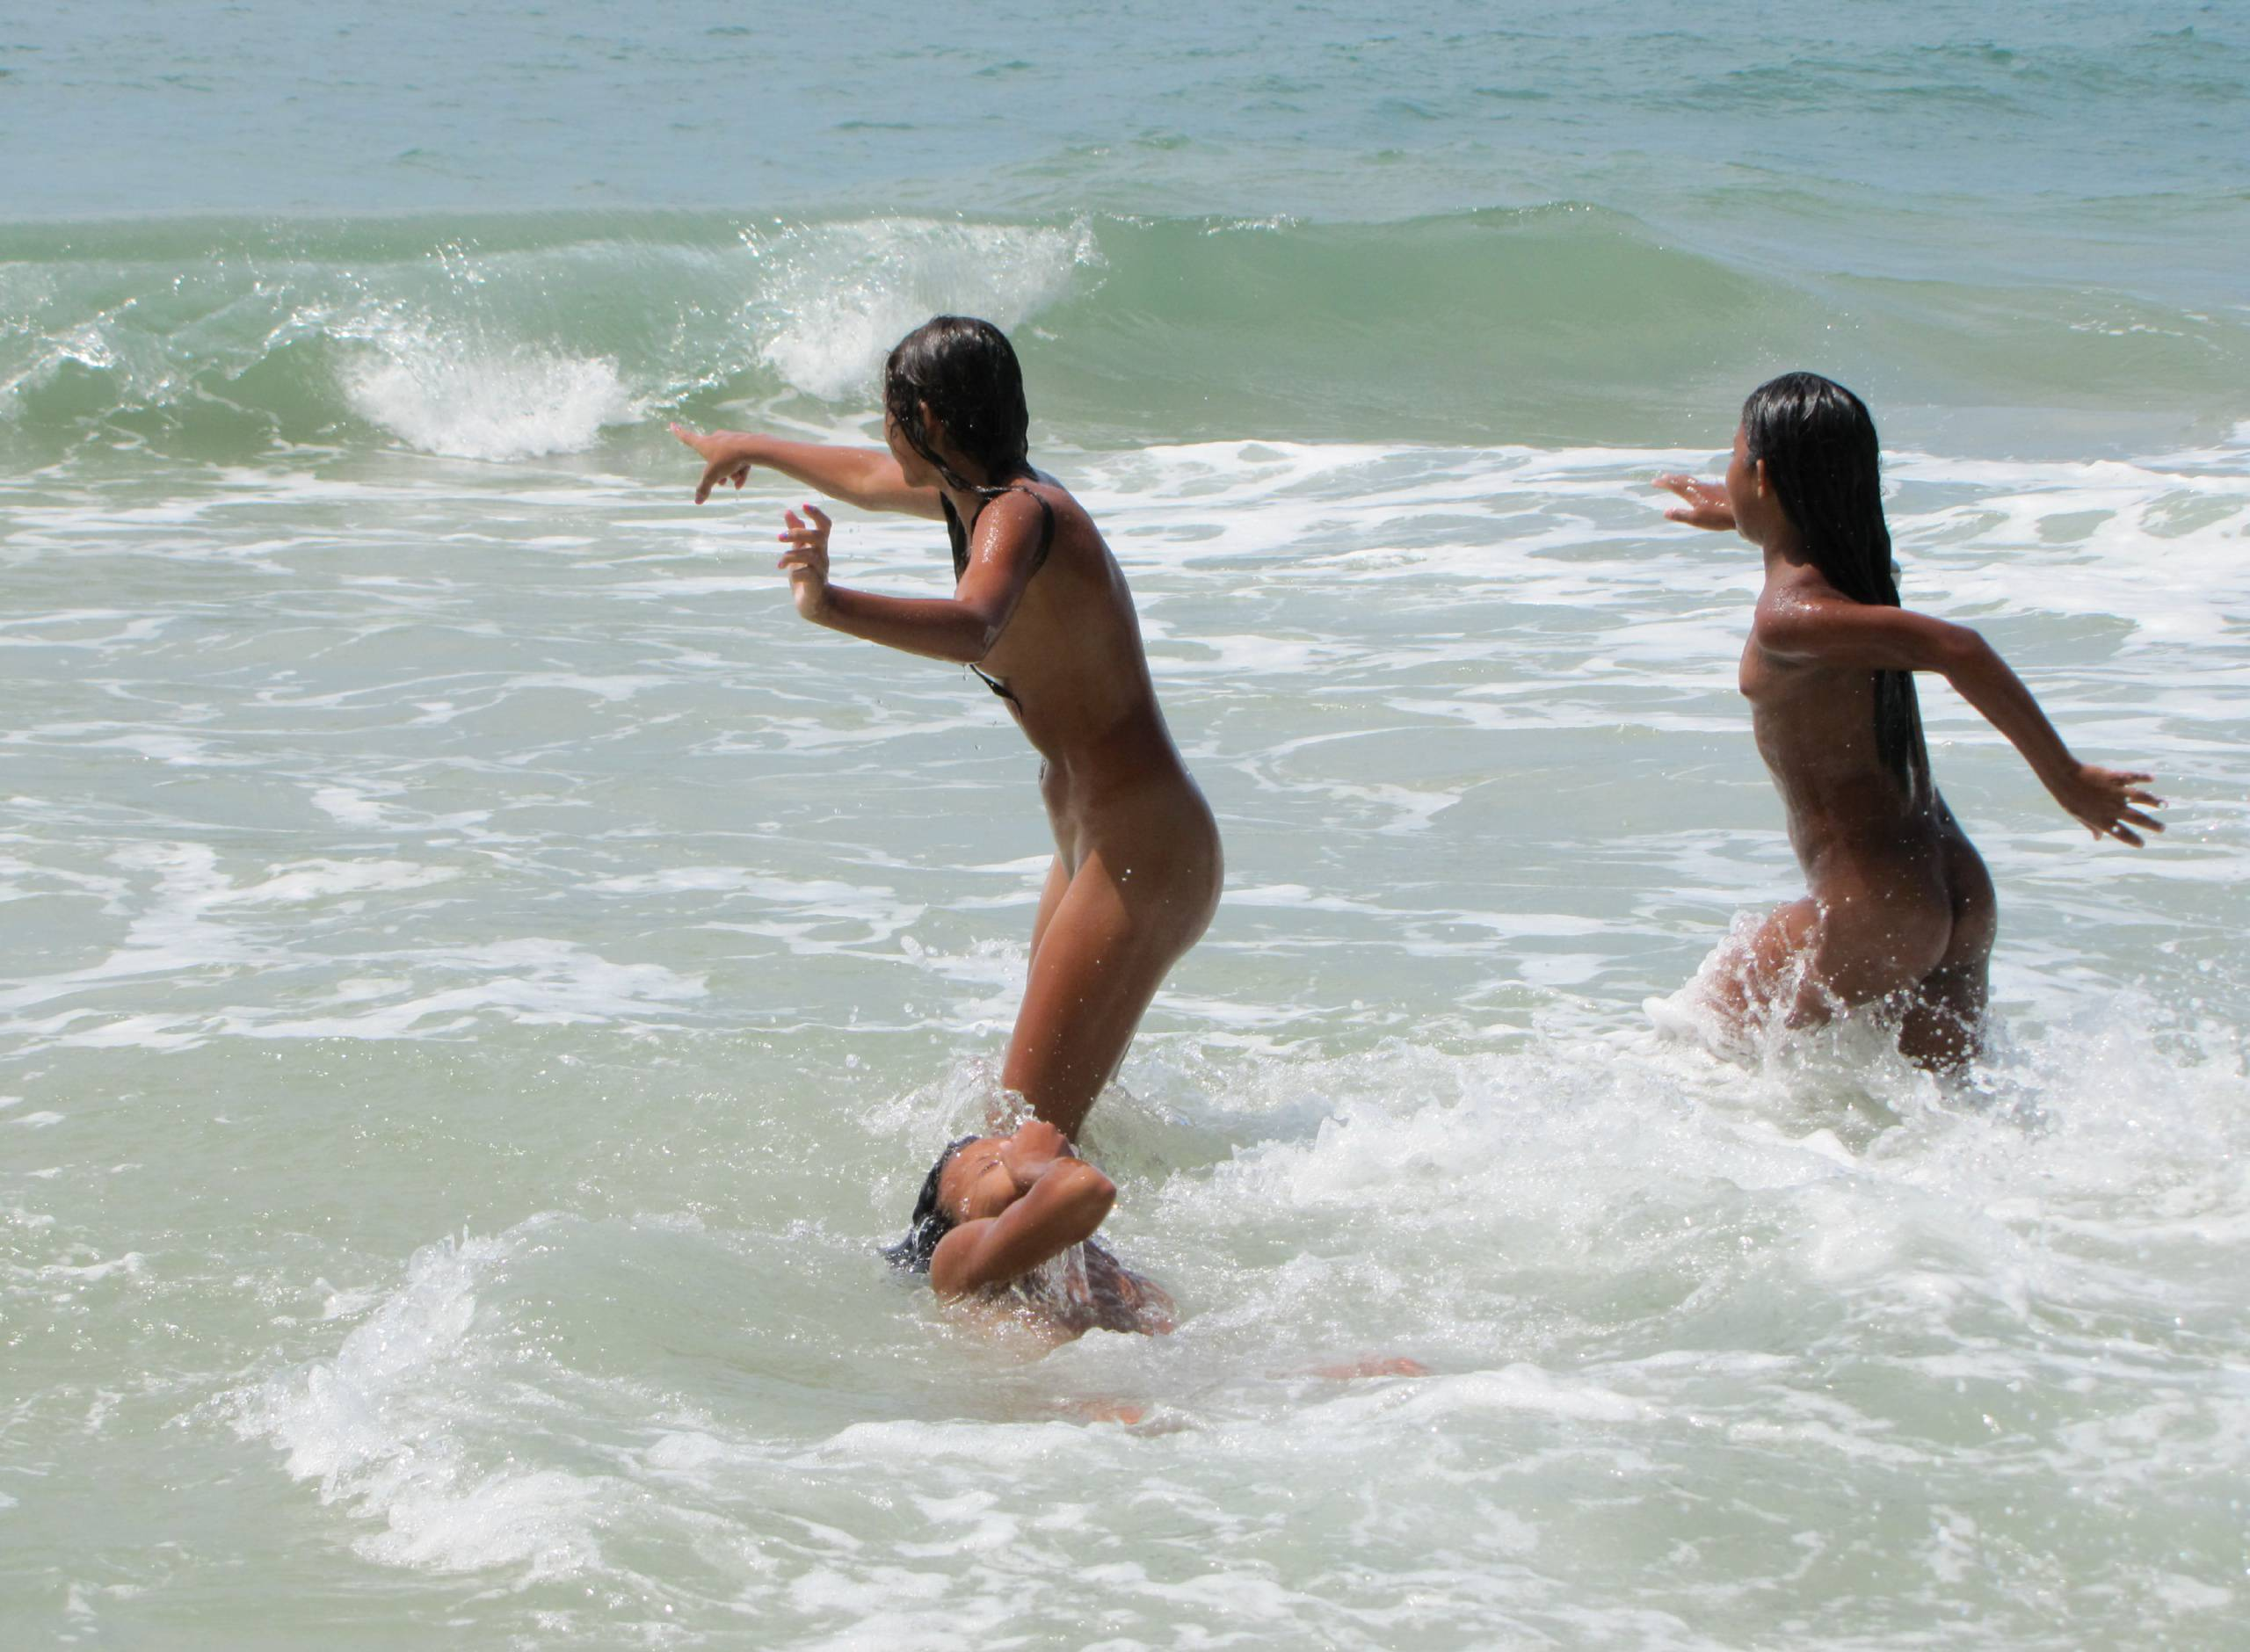 Nudist Photos Warm Brazilian Beach - 2